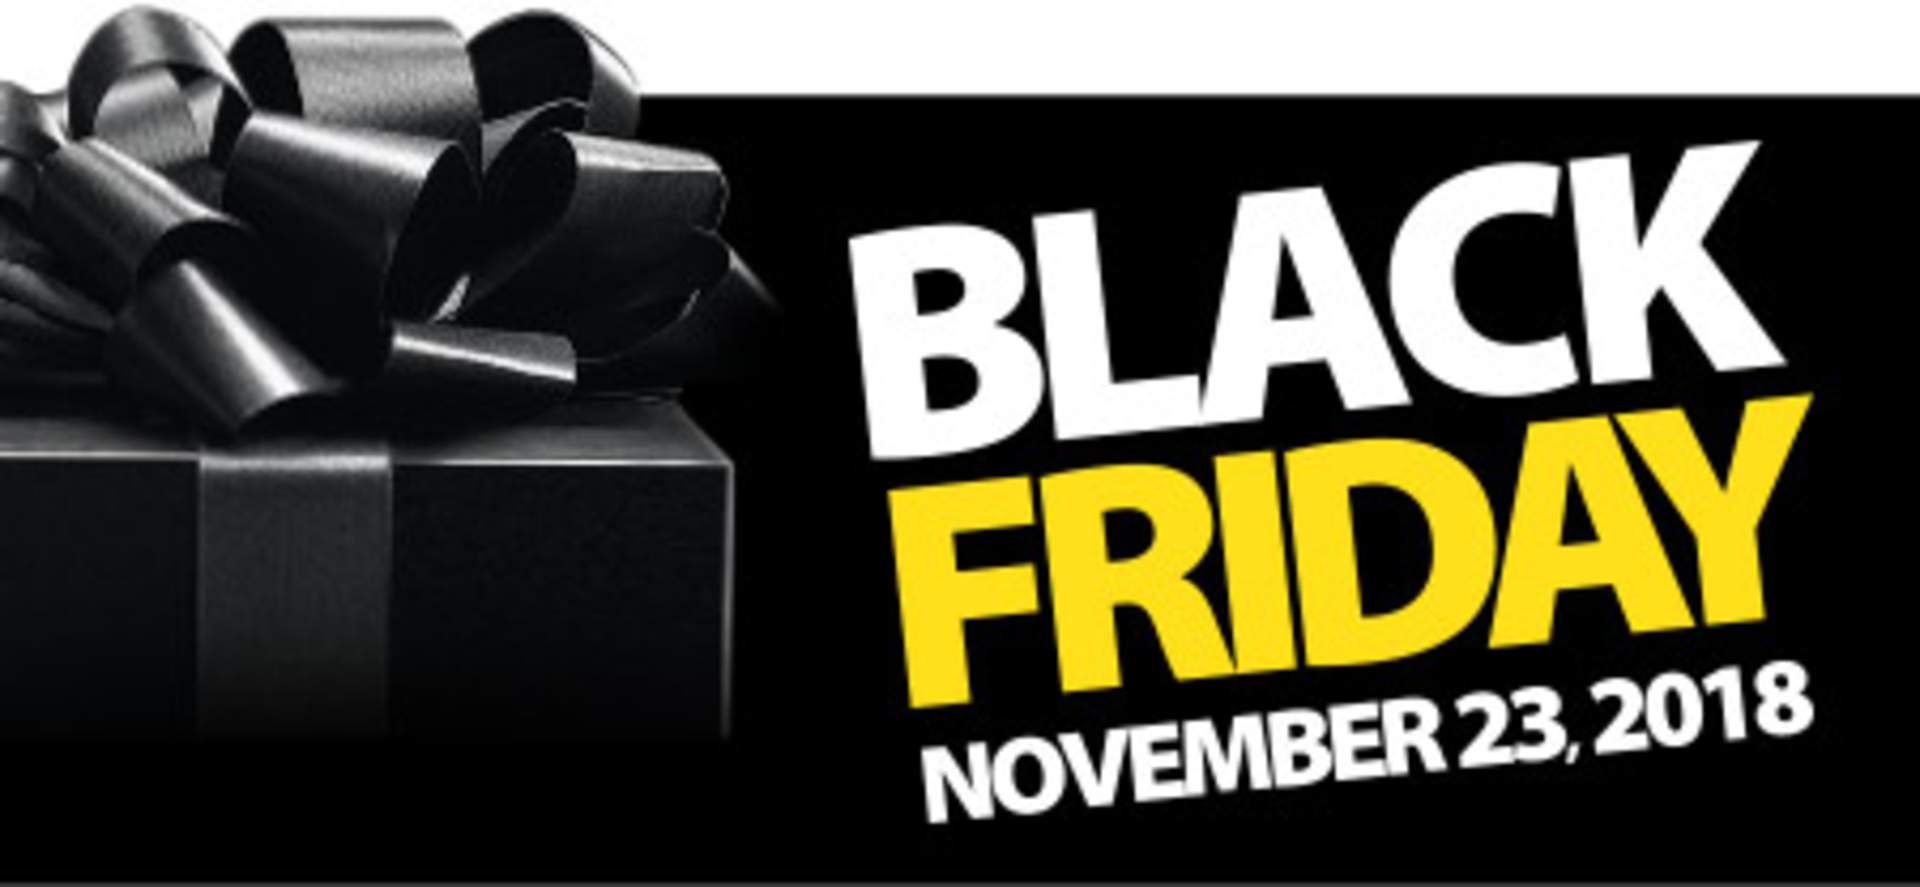 Get The Best Discount Offers On Dyson Black Friday 2018 image